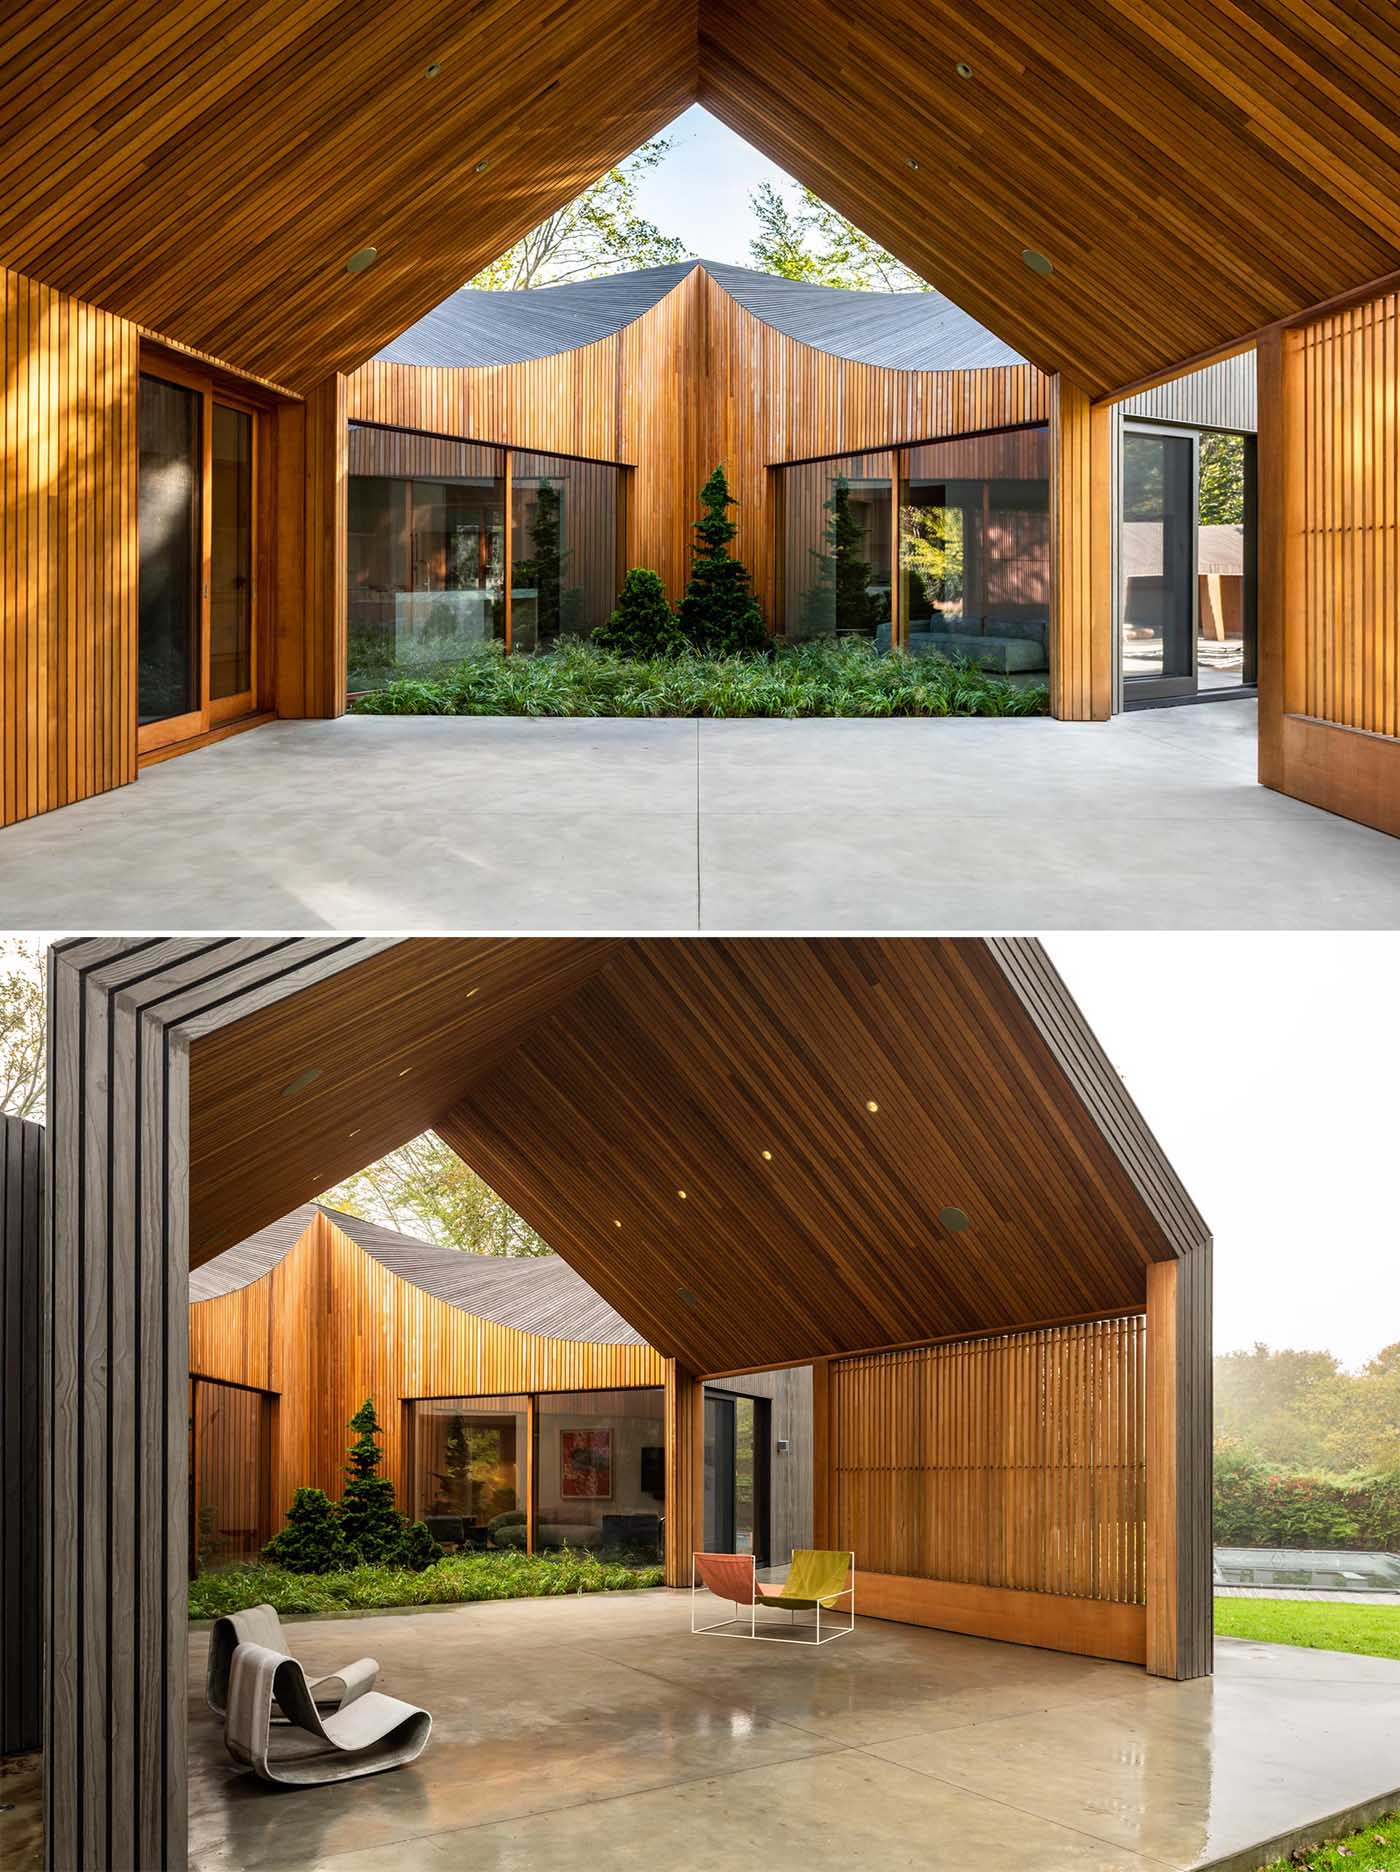 Ochre-hued cedar clads this home's hybrid indoor/outdoor zones, such as the triangular courtyard and porch.